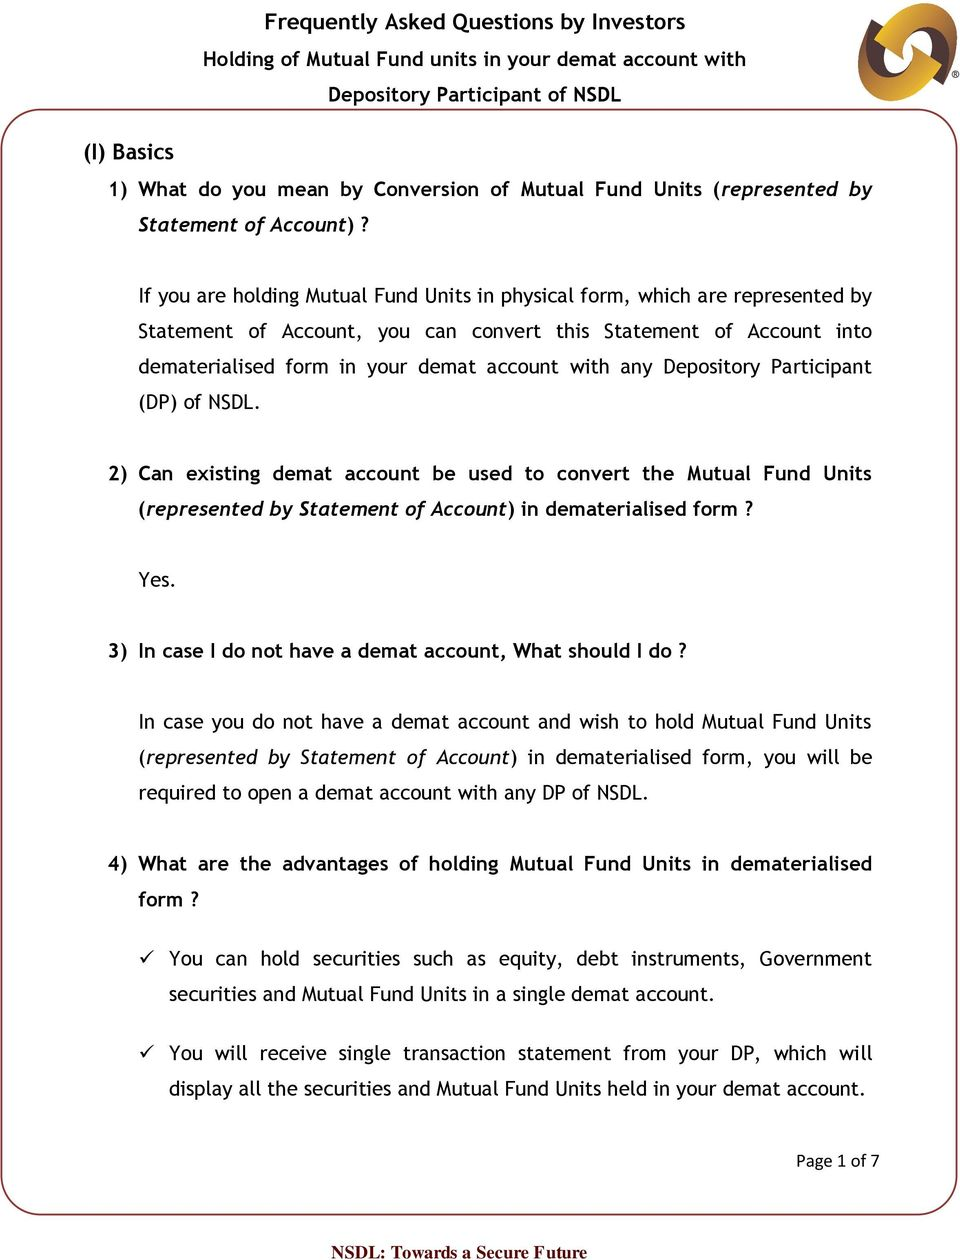 Depository Participant (DP) of NSDL. 2) Can existing demat account be used to convert the Mutual Fund Units (represented by Statement of Account) in dematerialised form? Yes.